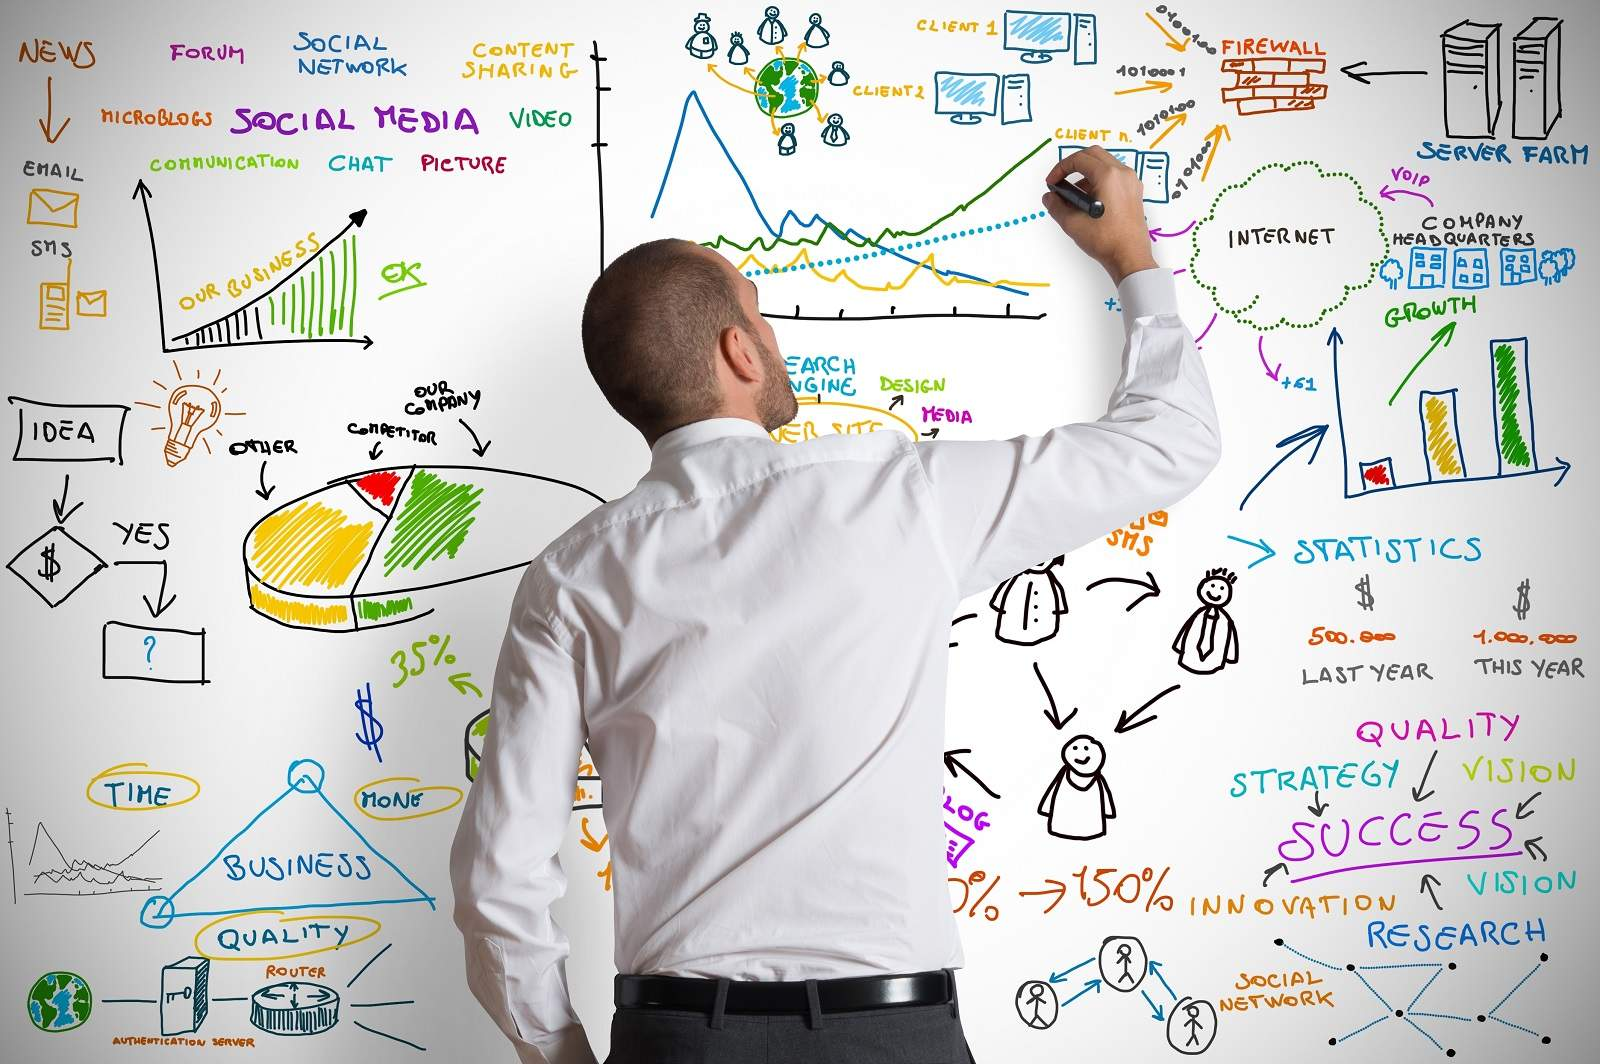 Marketing Consultancy Service in St. Catharines